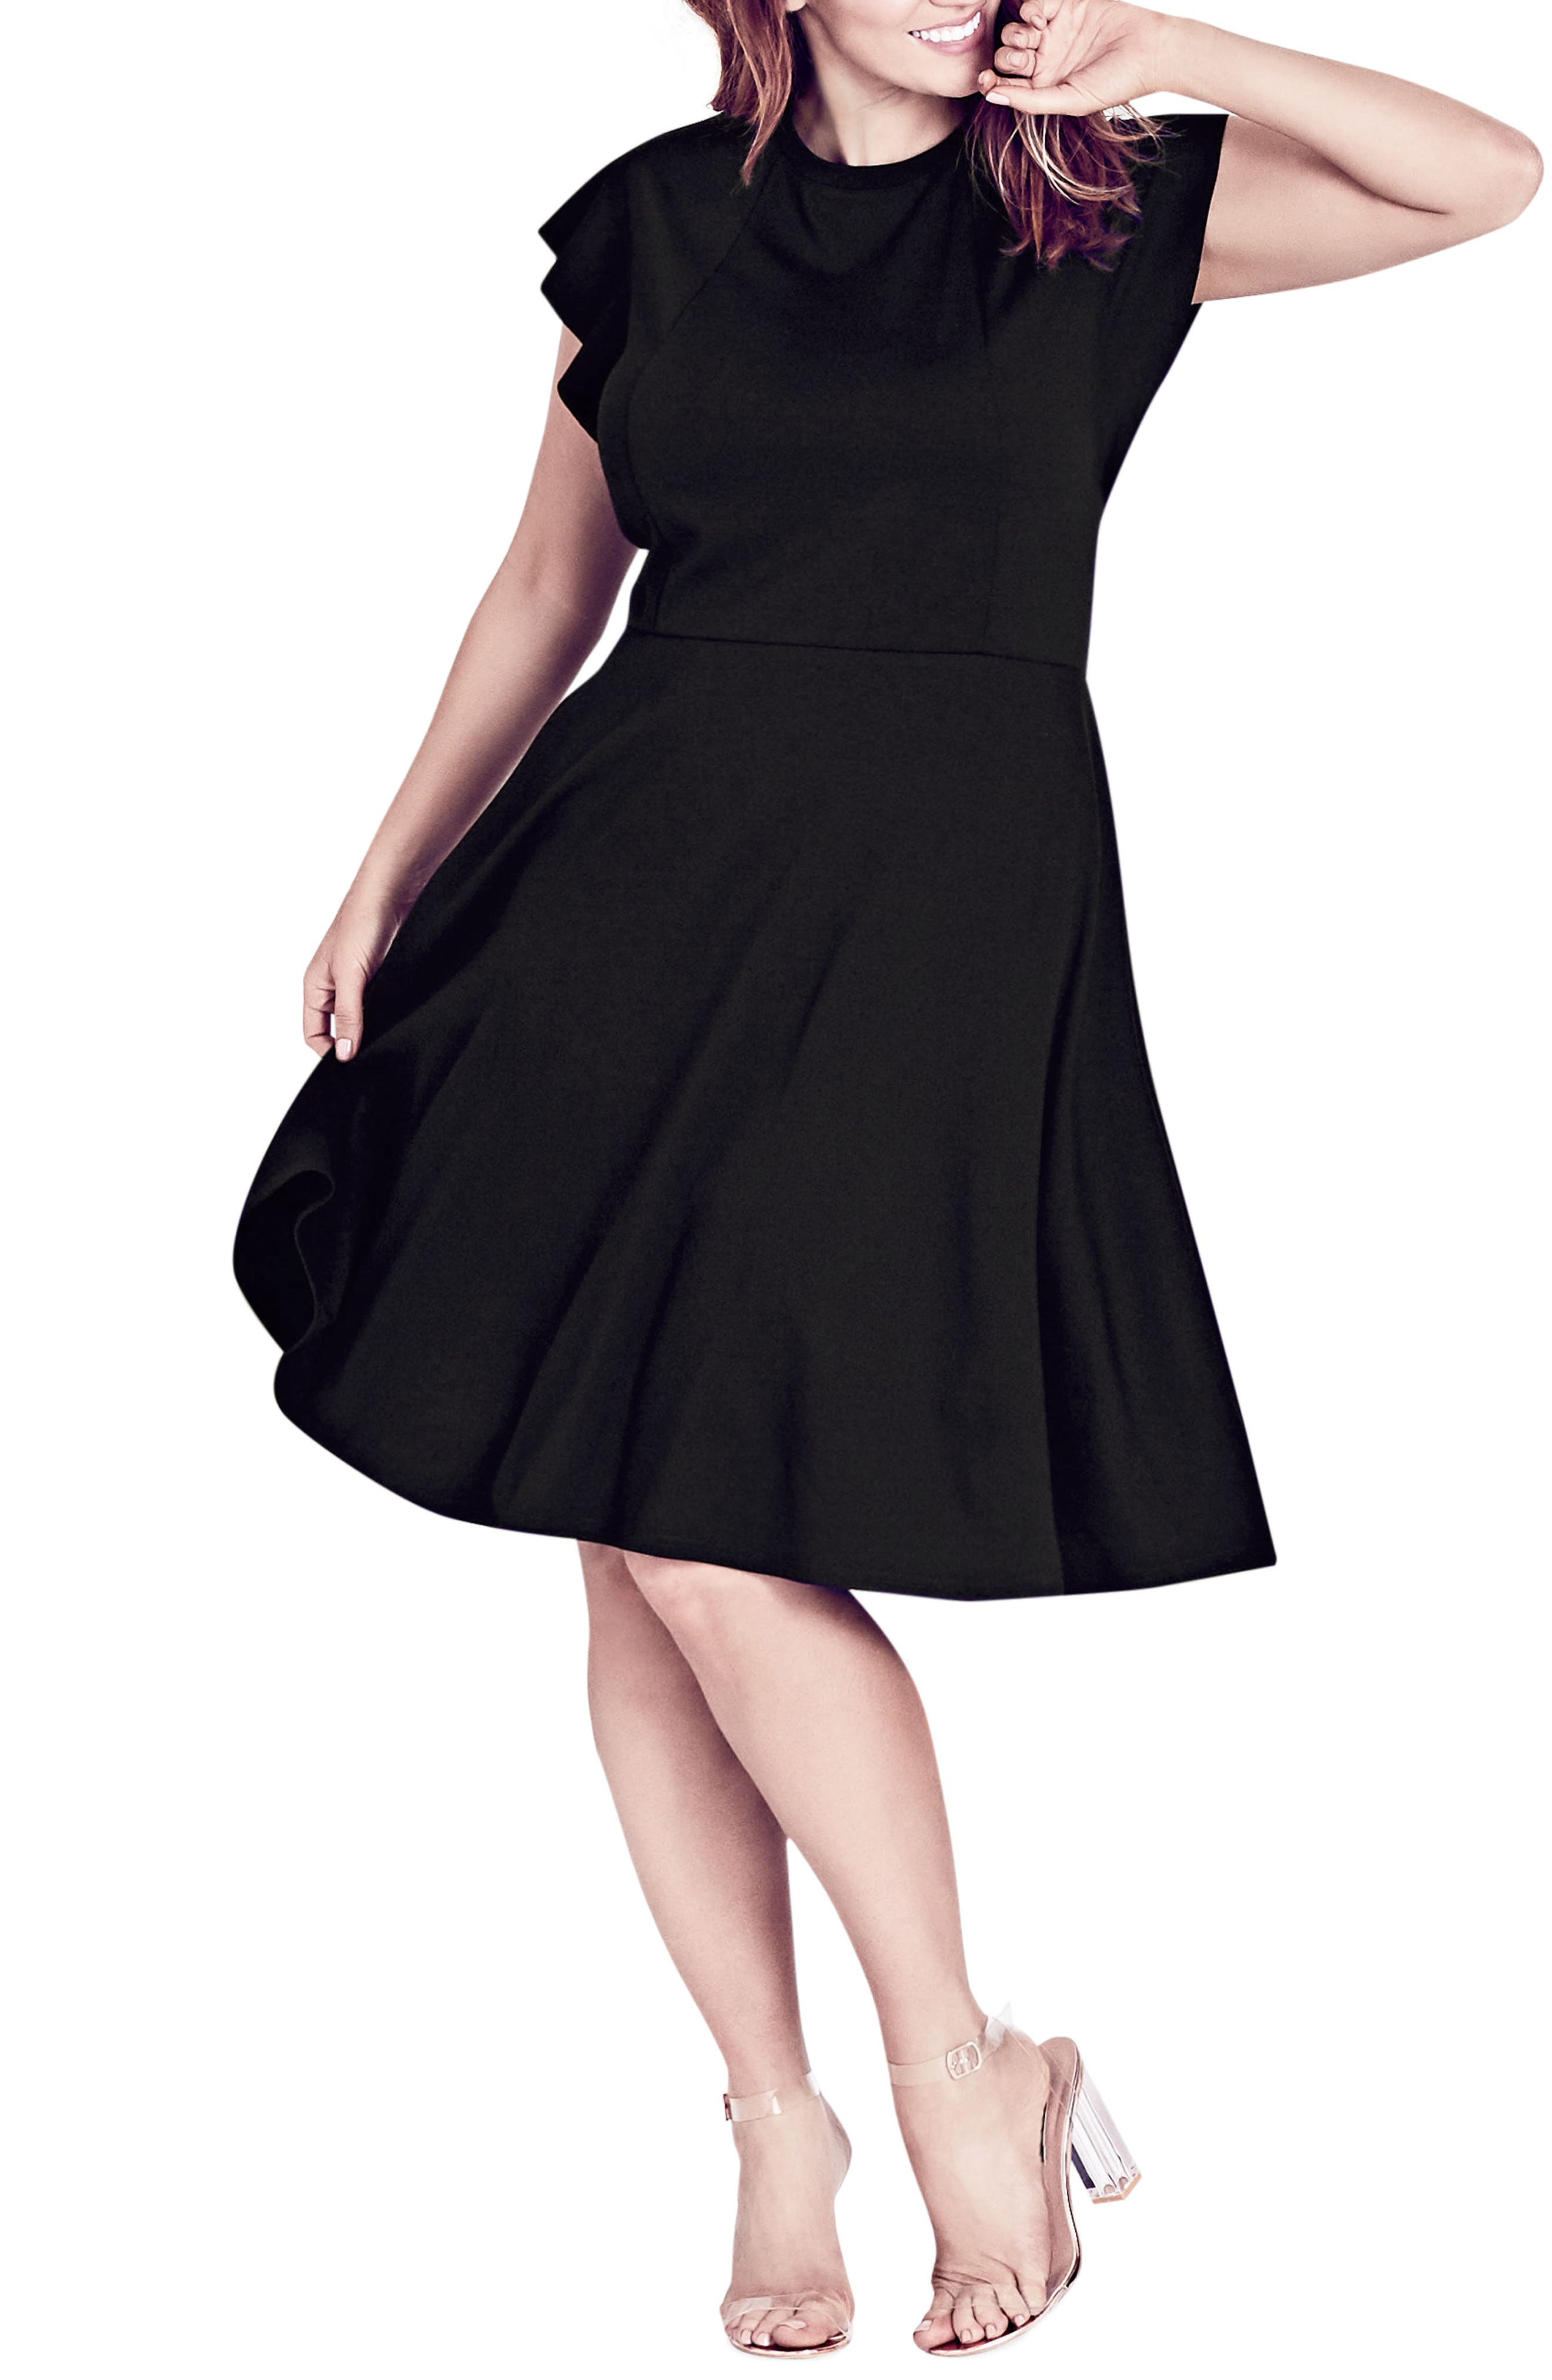 Main Image - City Chic Frill Sleeve Fit & Flare Dress (Plus Size)